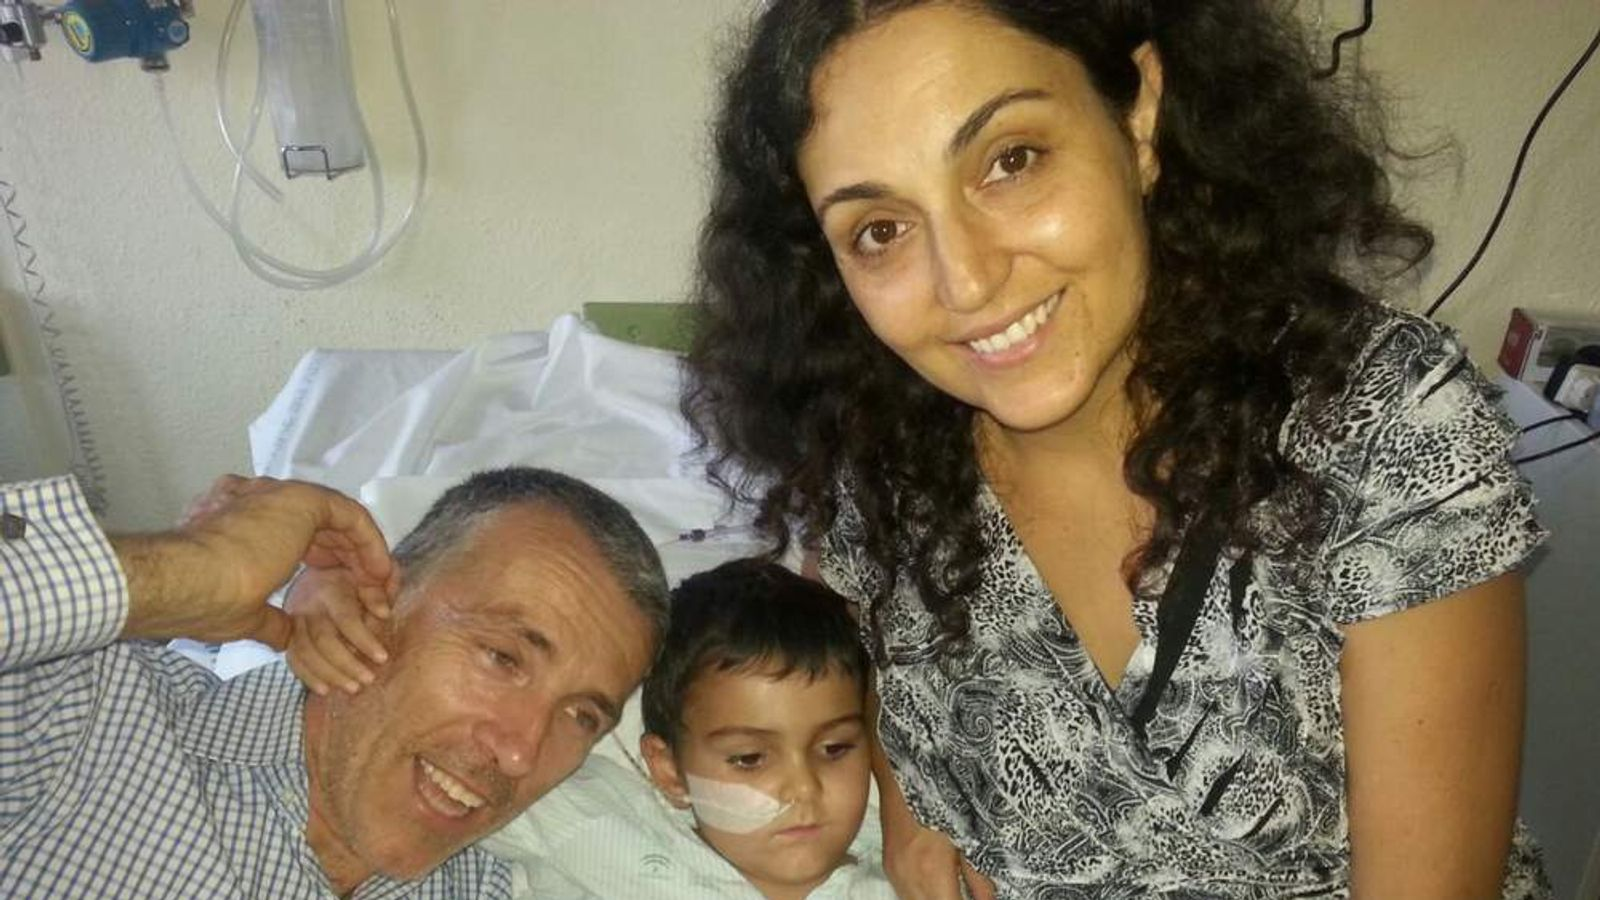 Ashya King with parents Brett and Naghemeh King